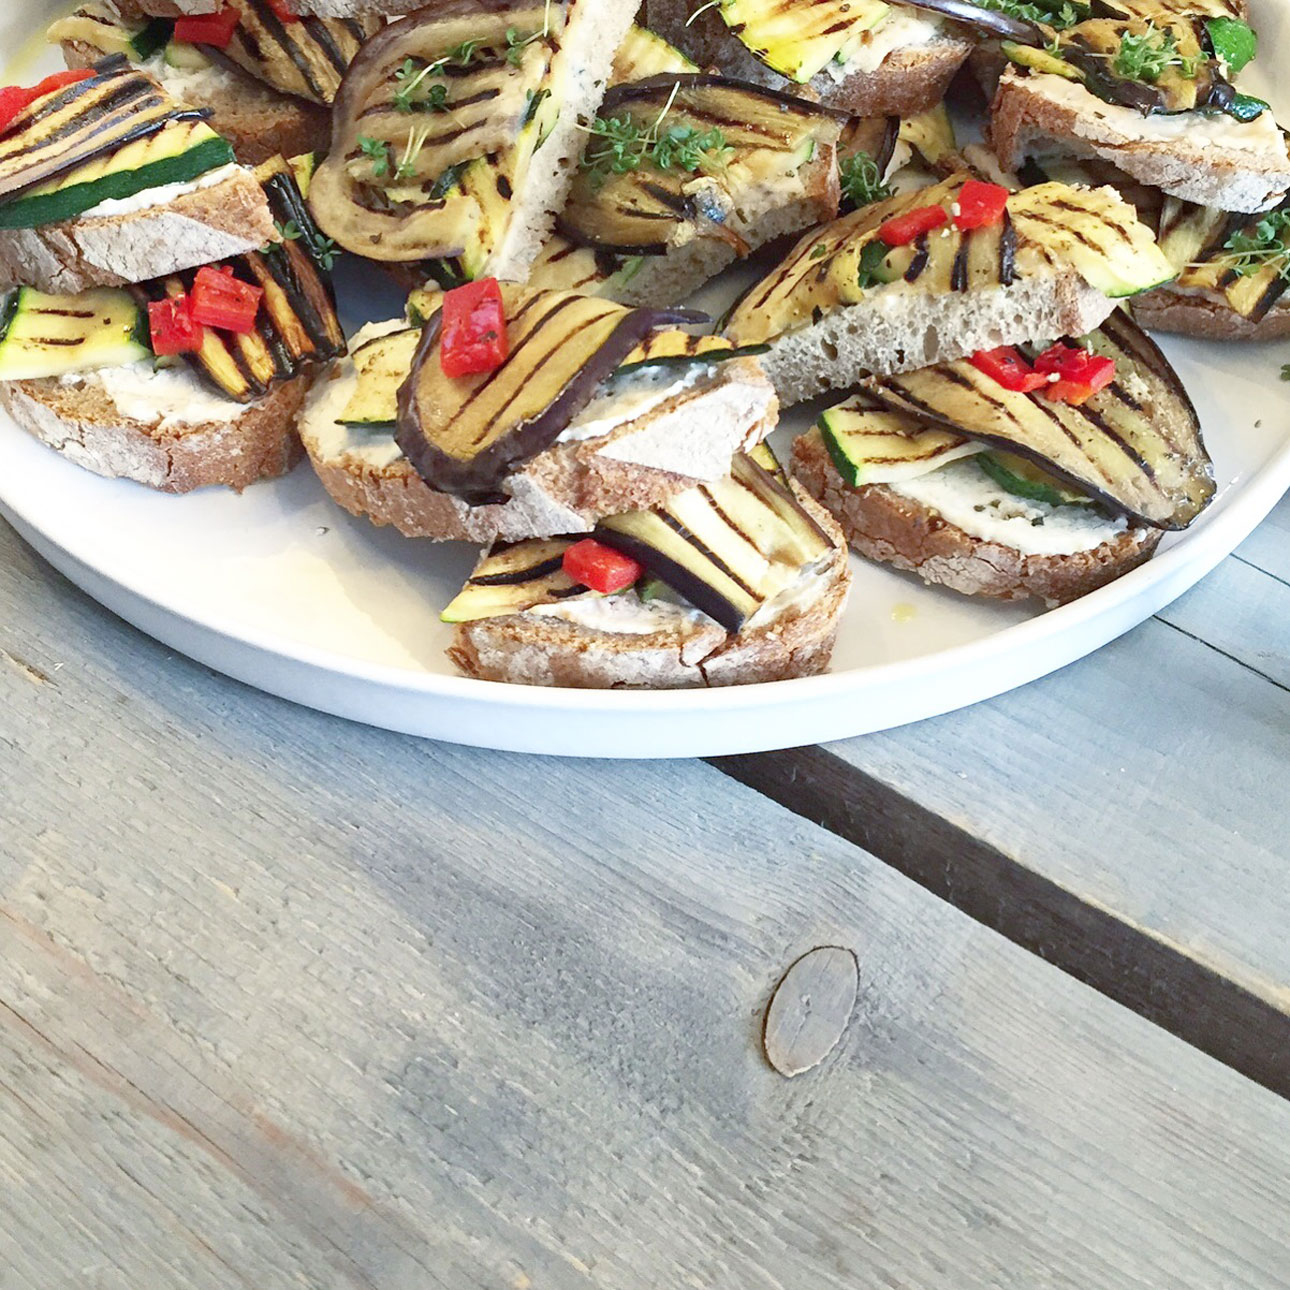 Mamalifestyle maart 2016 11 cursus lunch